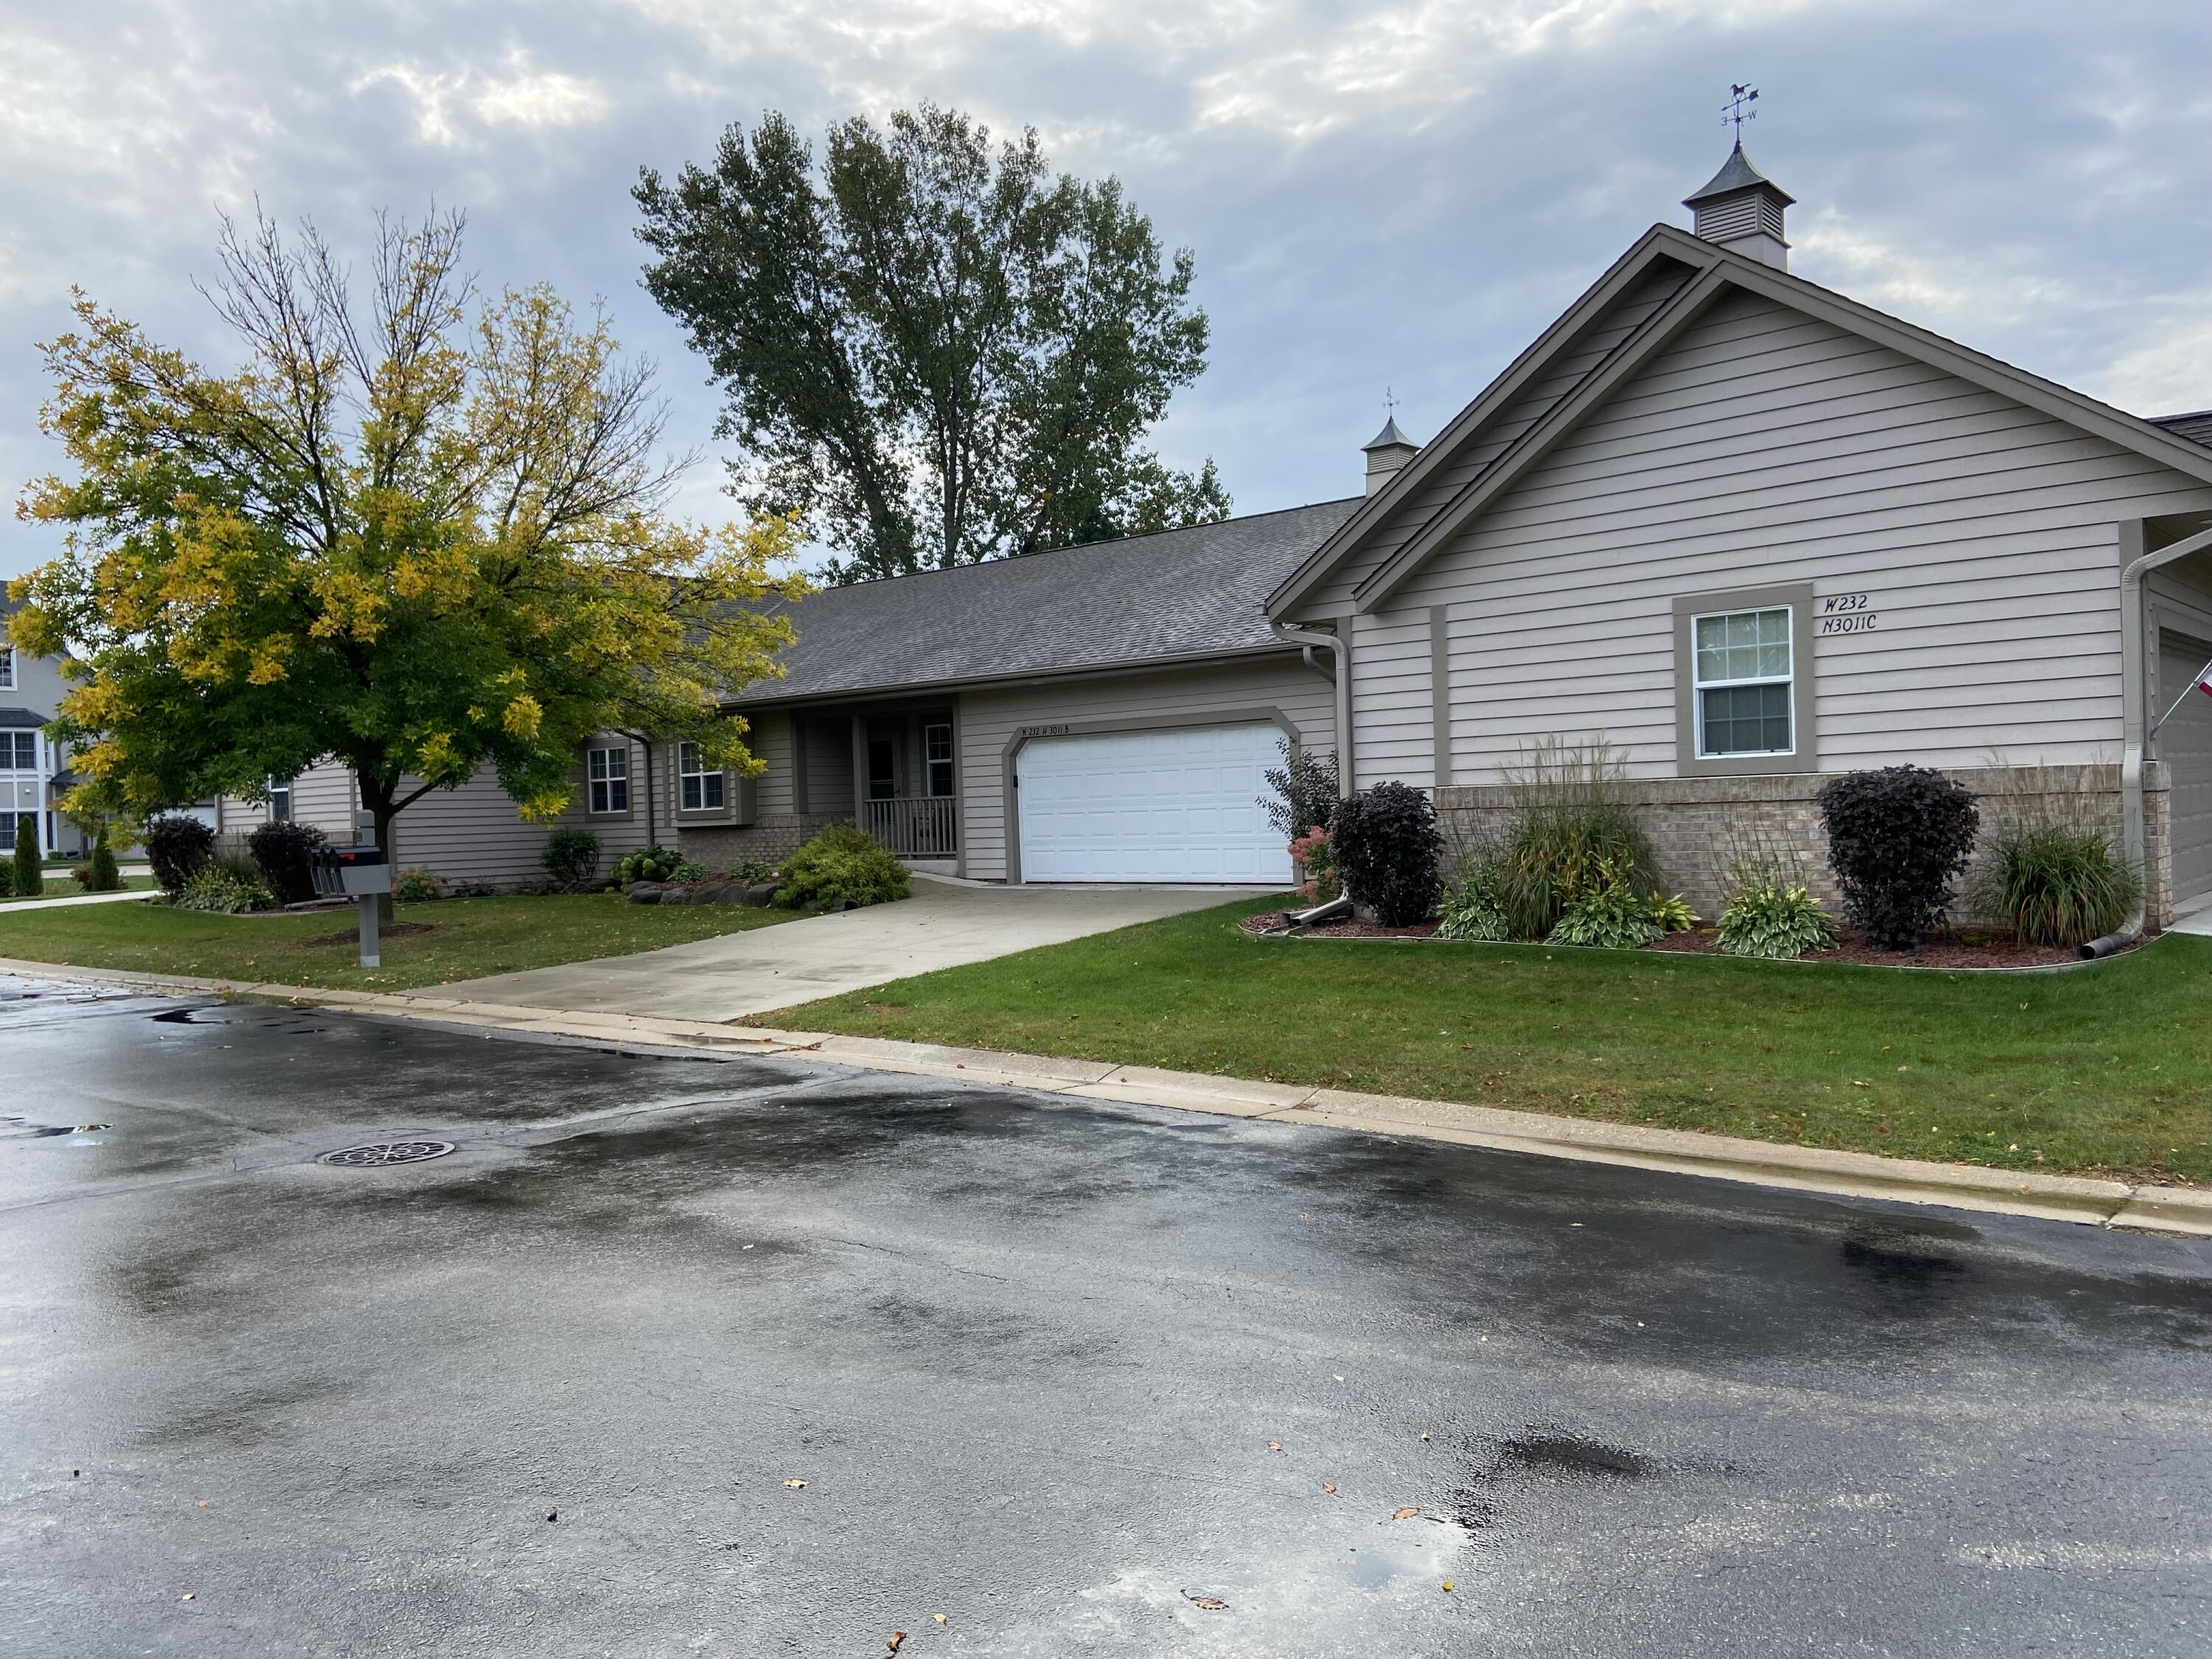 W232N3011 Emerald Ln, Pewaukee, Wisconsin 53072, 2 Bedrooms Bedrooms, 5 Rooms Rooms,2 BathroomsBathrooms,Condominiums,For Sale,Emerald Ln,1,1766151